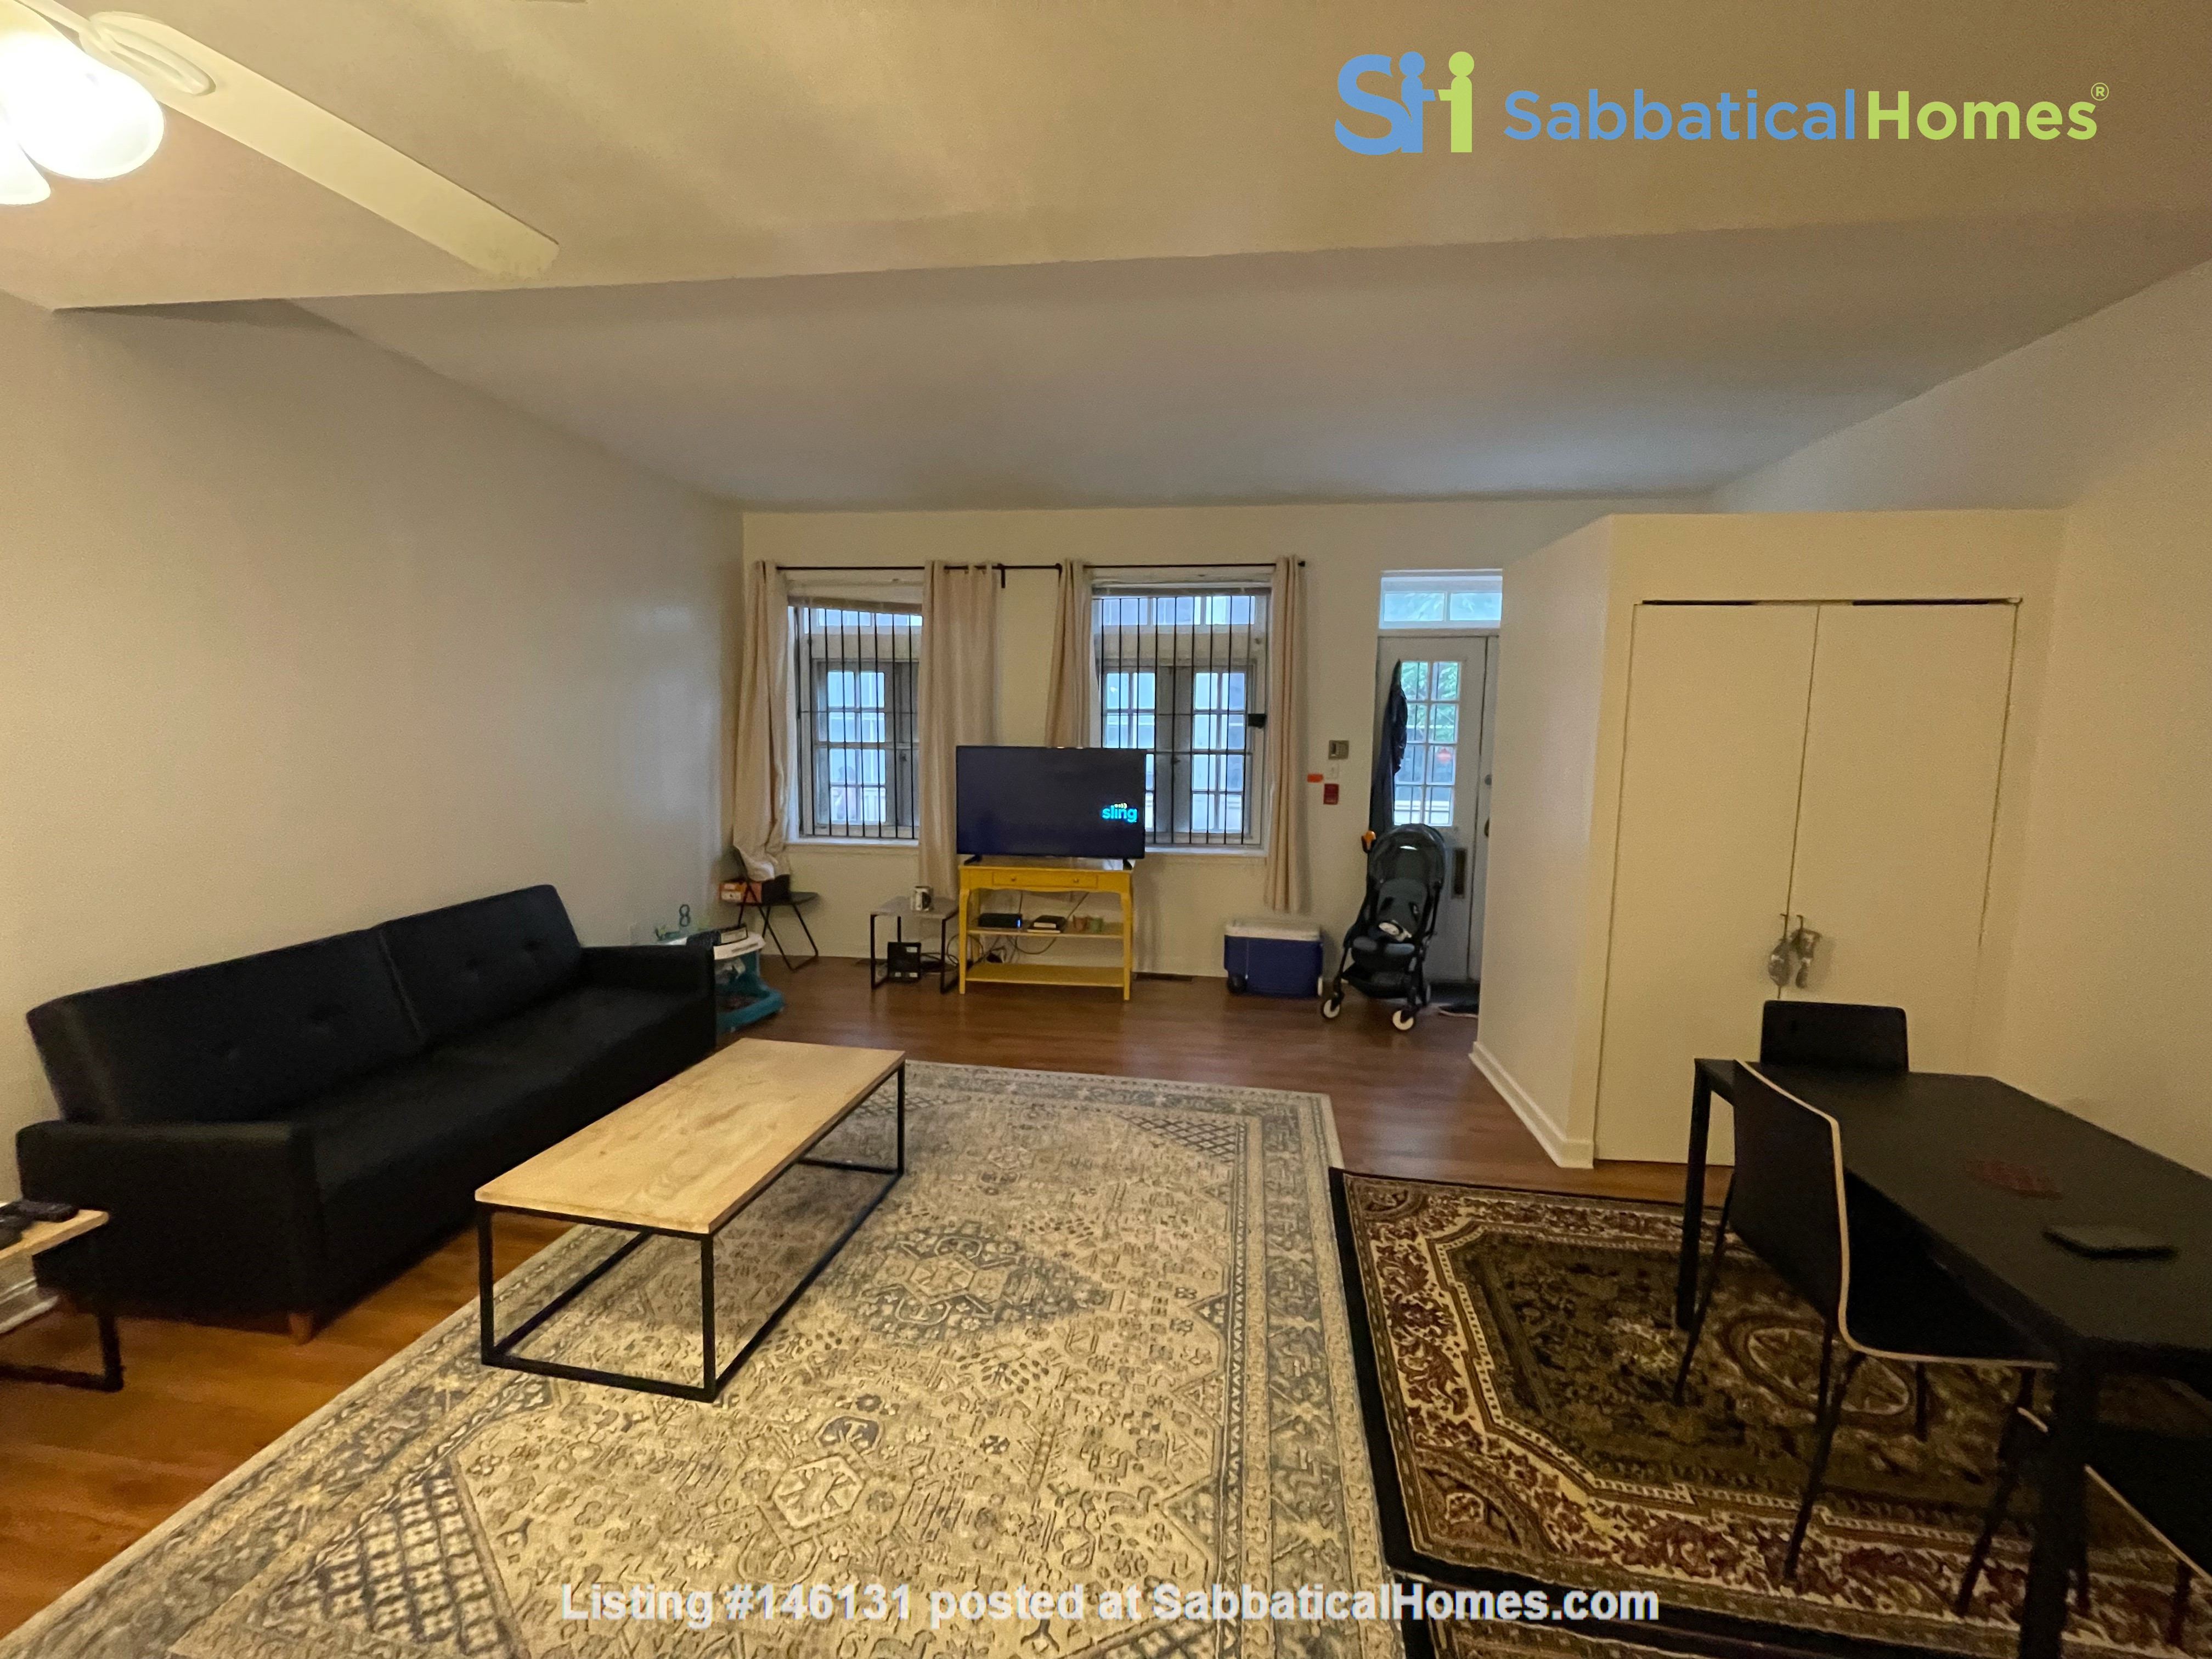 Spacious Old City 1 bedroom available Aug 1 -a city oasis! Home Rental in Philadelphia 2